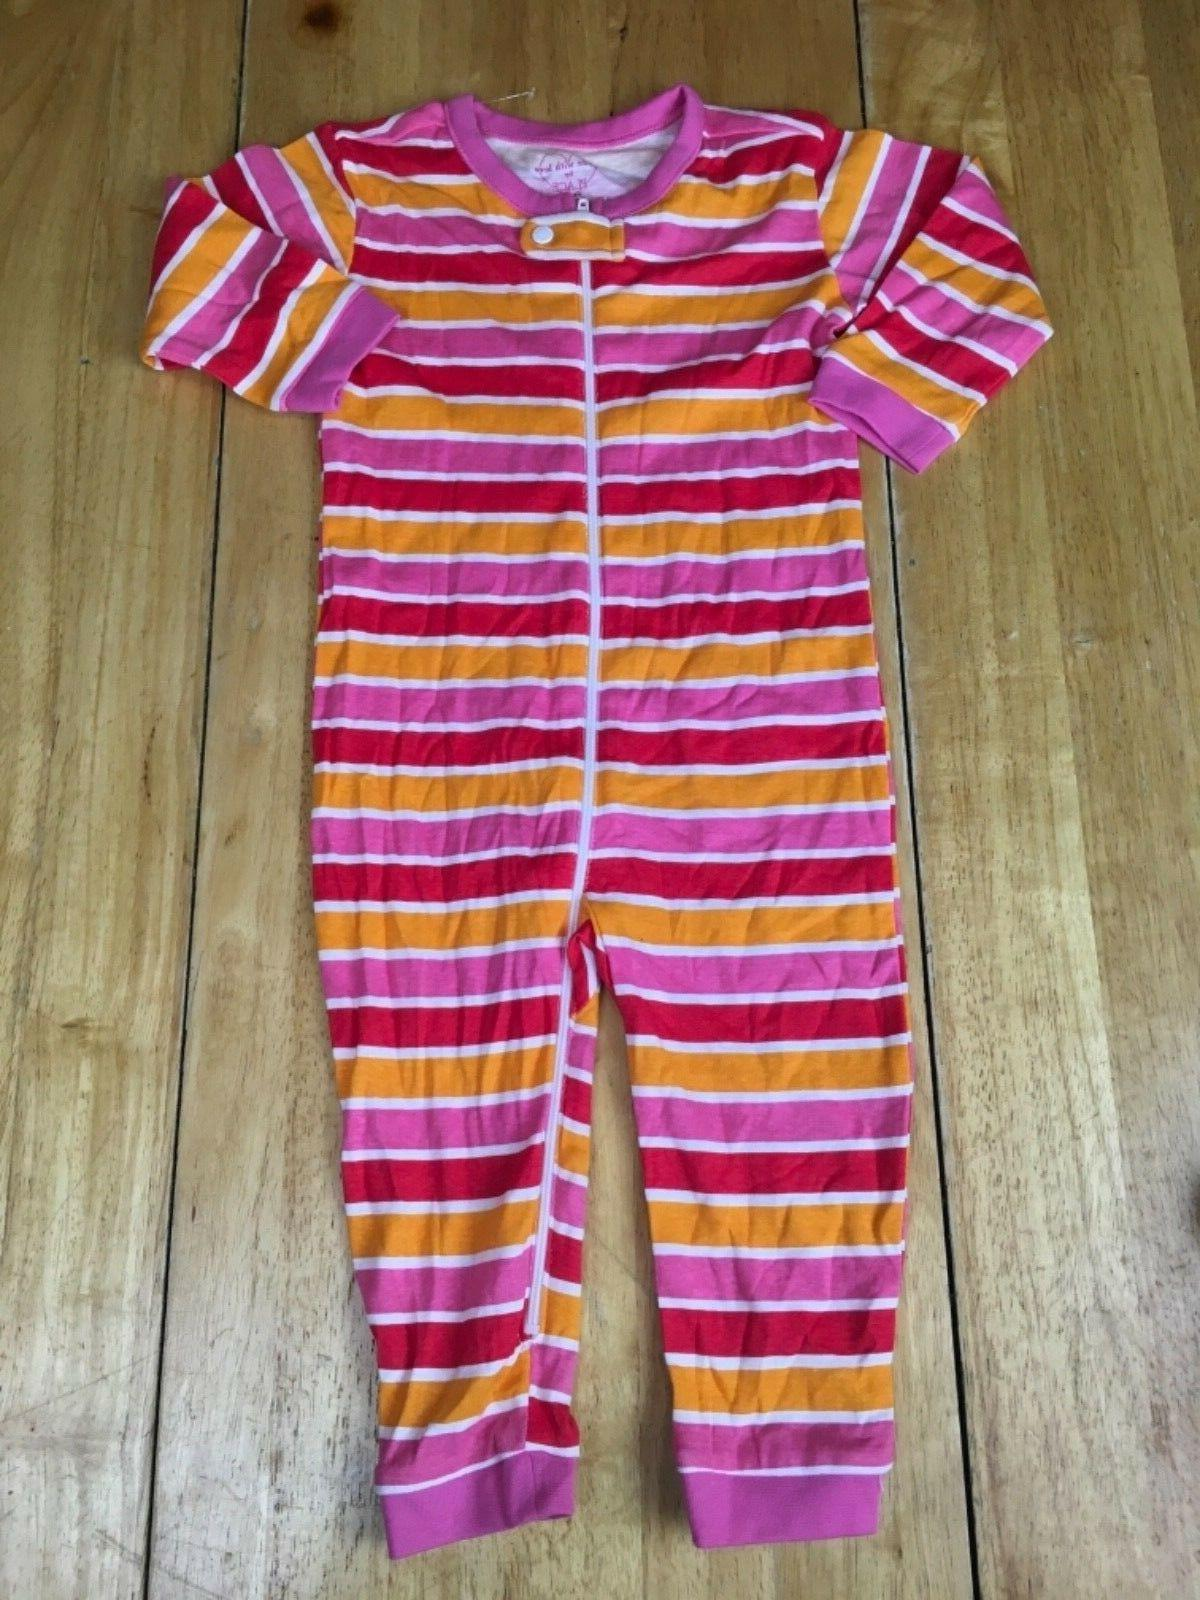 The Zipup Pajamas Size